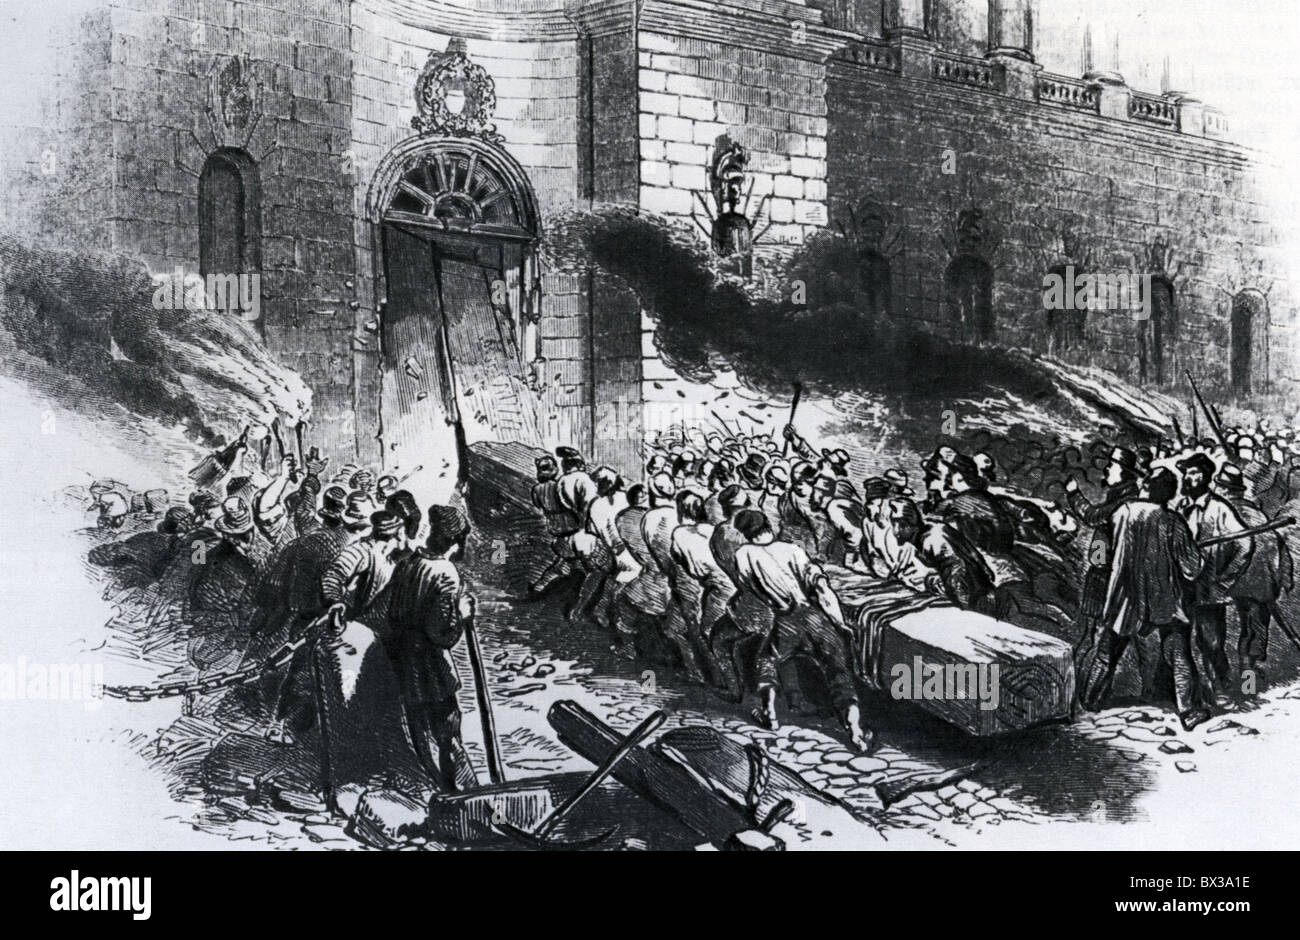 RIOTERS ATTACKING THE BERLIN ARMOURY 14 JUNE 1848 - Stock Image